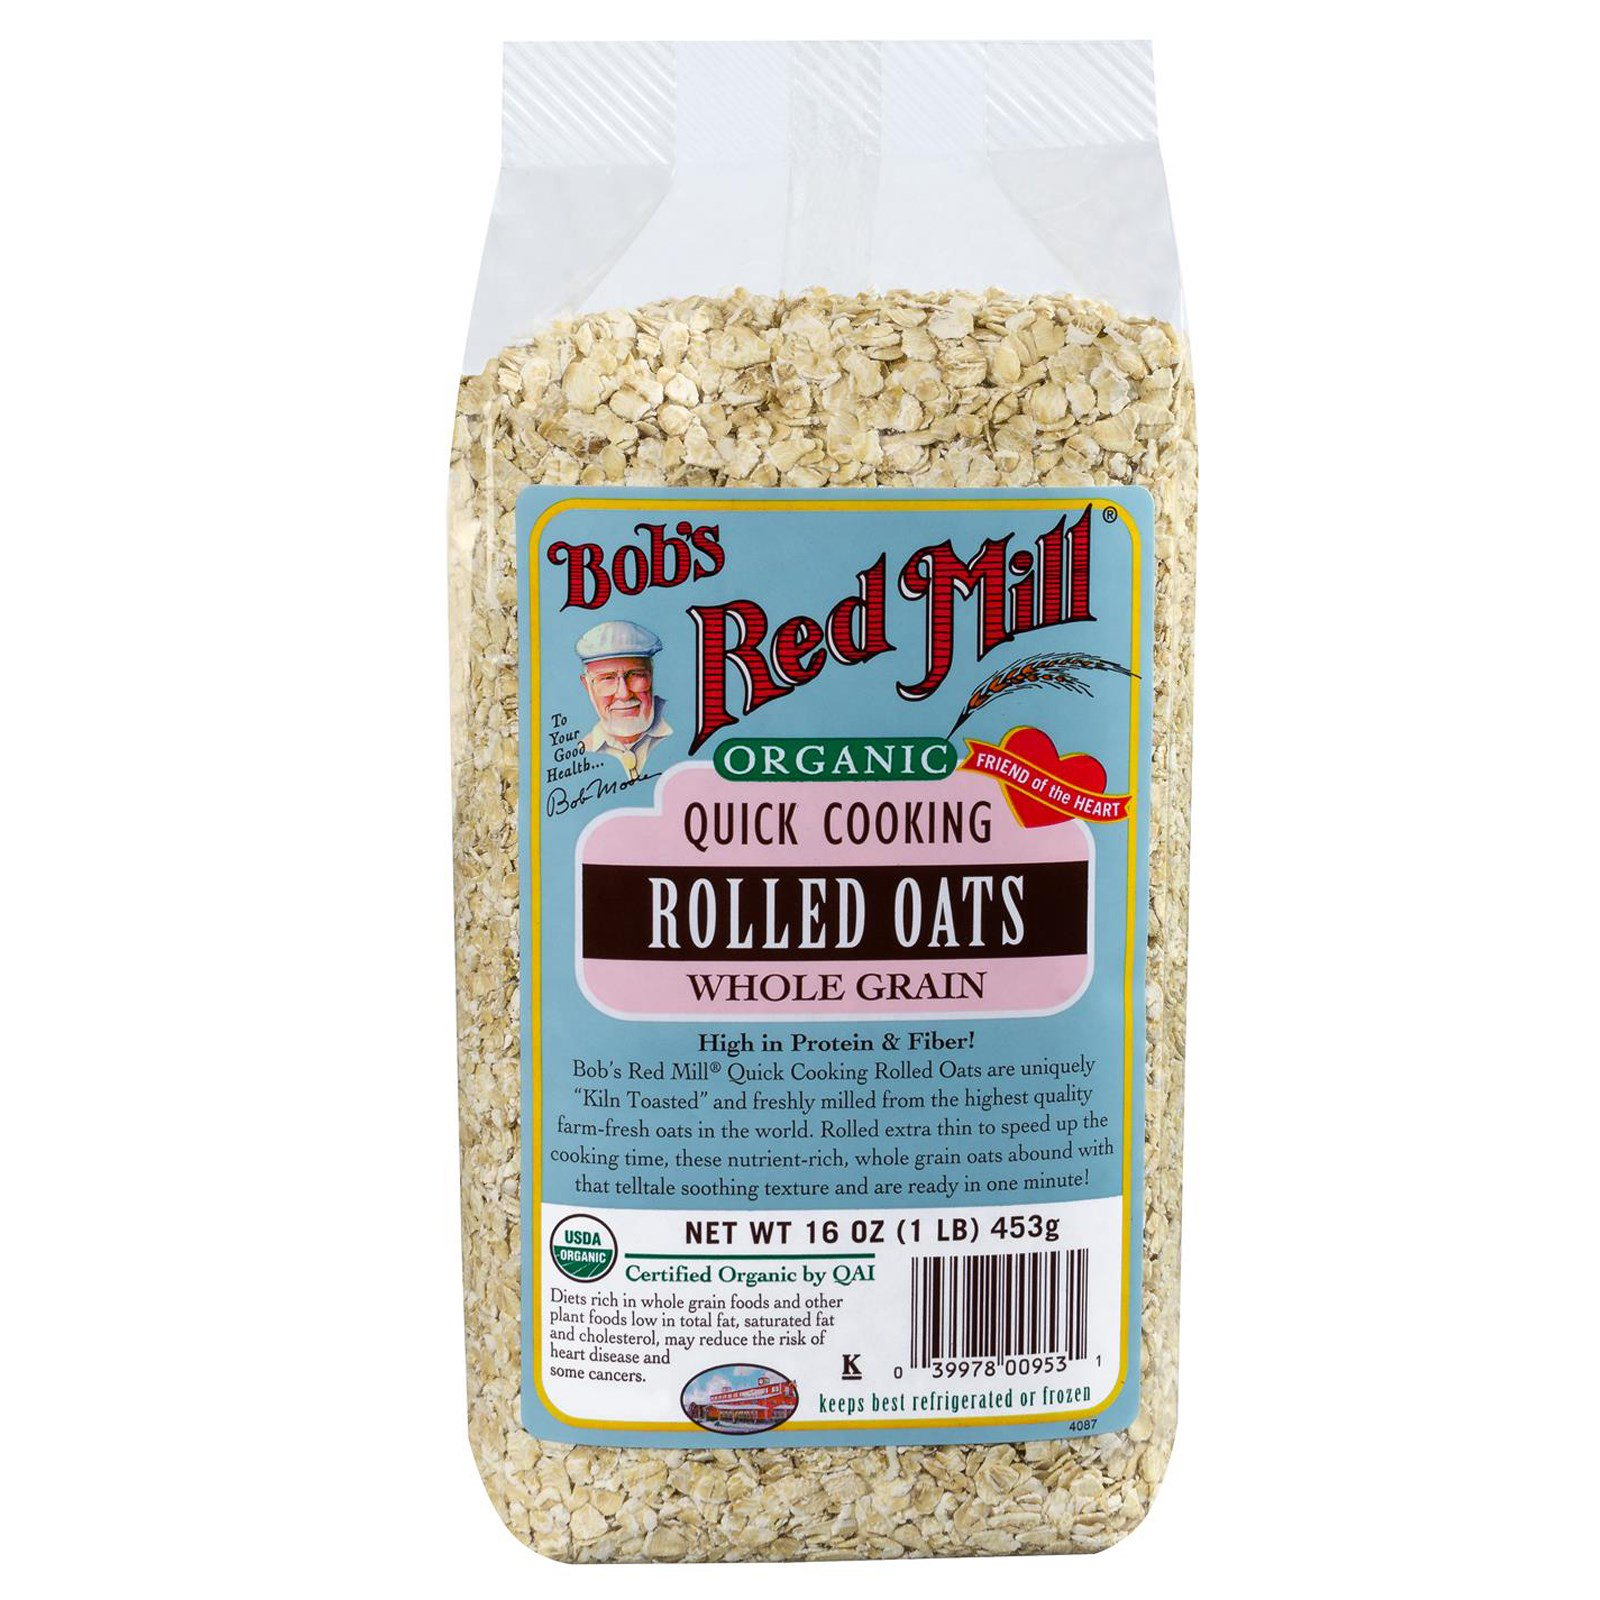 Bob's Red Mill, Organic Quick Cooking Rolled Oats, Whole Grain, 16 oz (453 g)